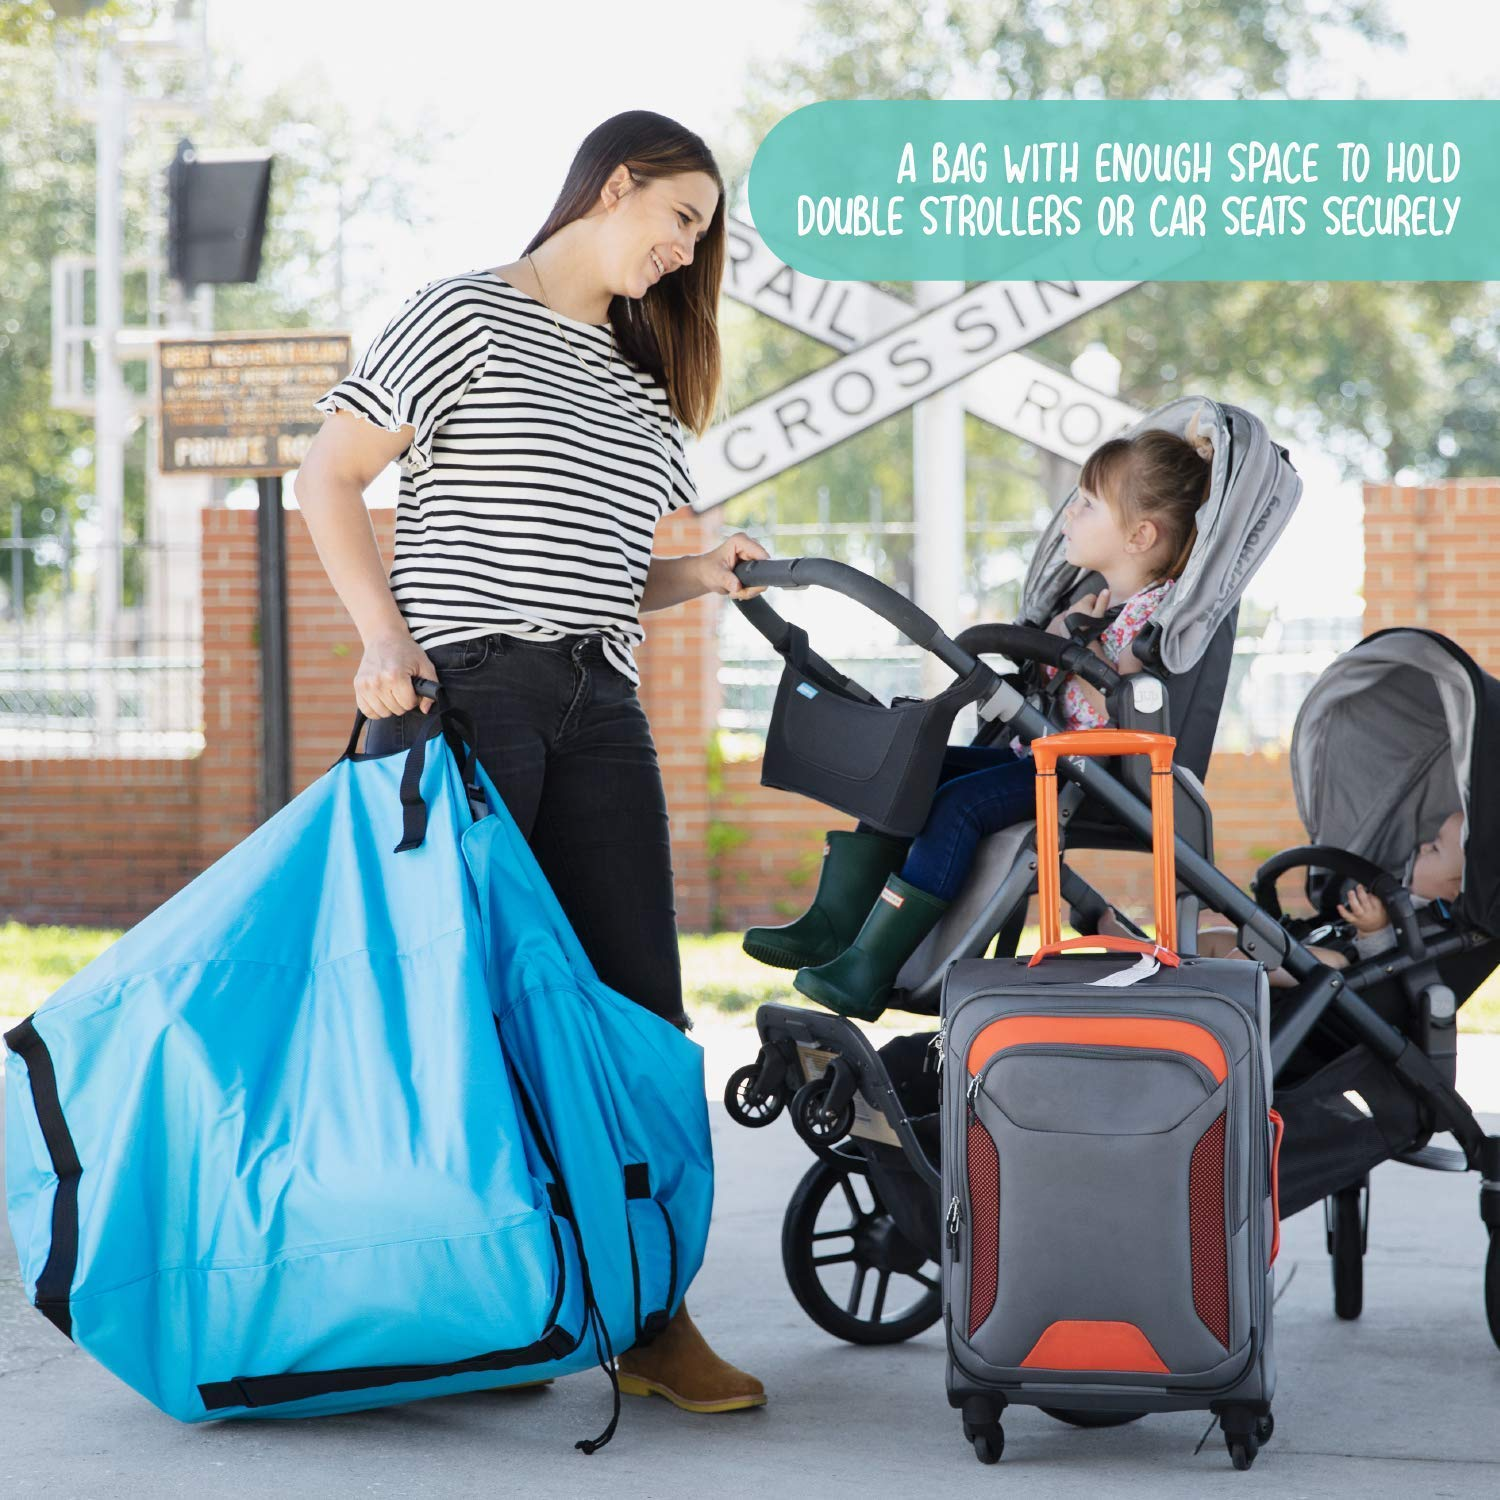 Clip Buckle Top Flap HedgeHop Extra Large Car Seat Reinforced Stitching Padded Shoulder Straps Double Buggy /& Pushchair Travel Bag High Tear Resistant 1680D Coated Fabric